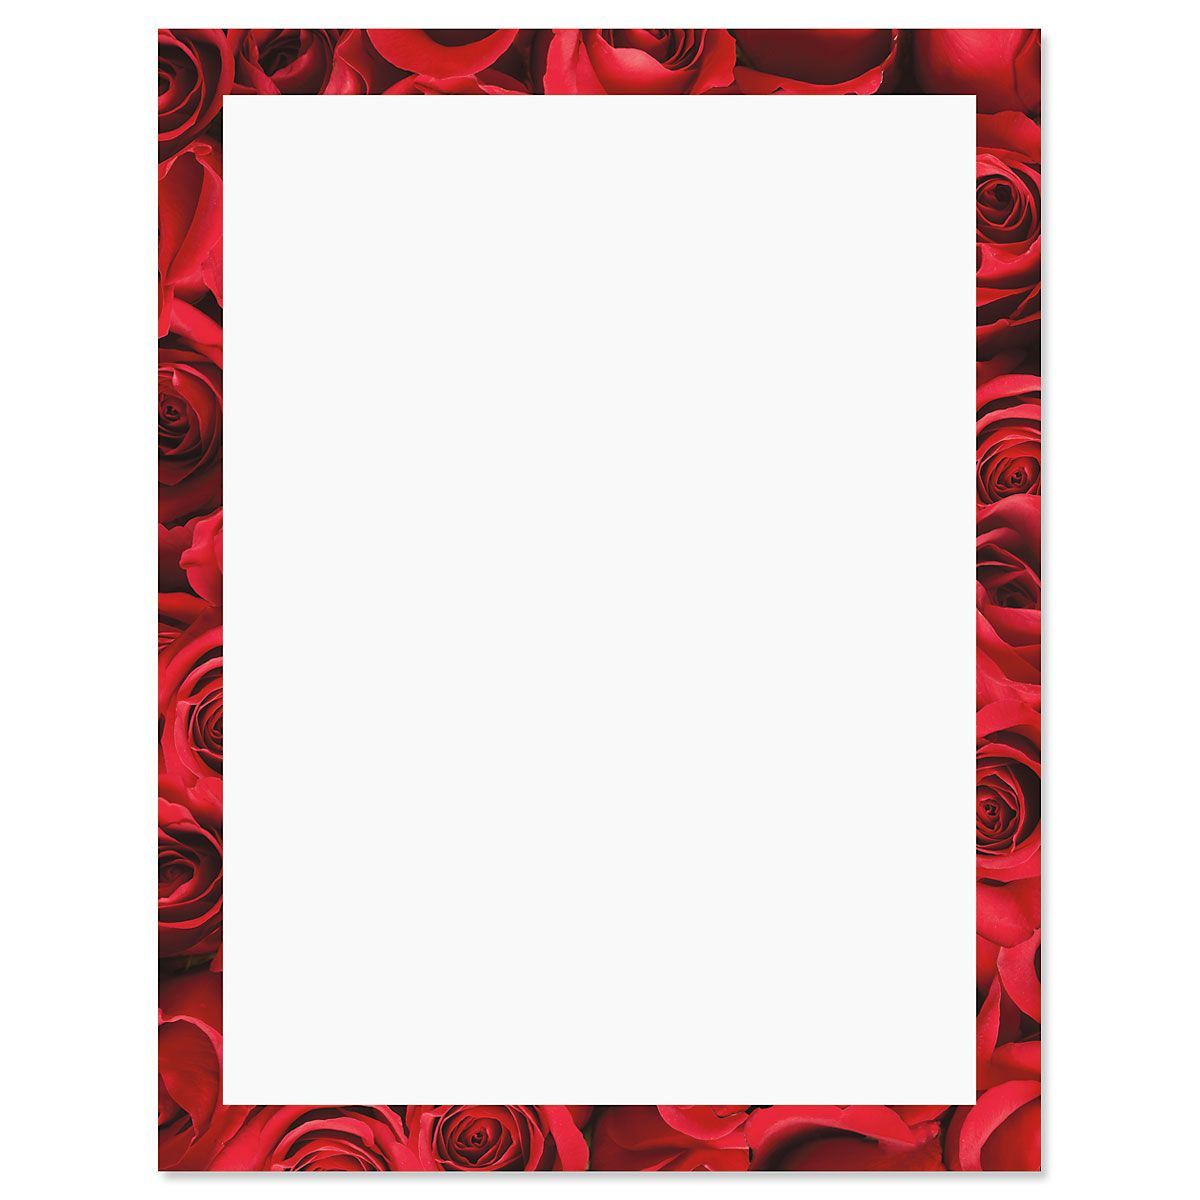 Bed of Roses Frame on White Letter Papers